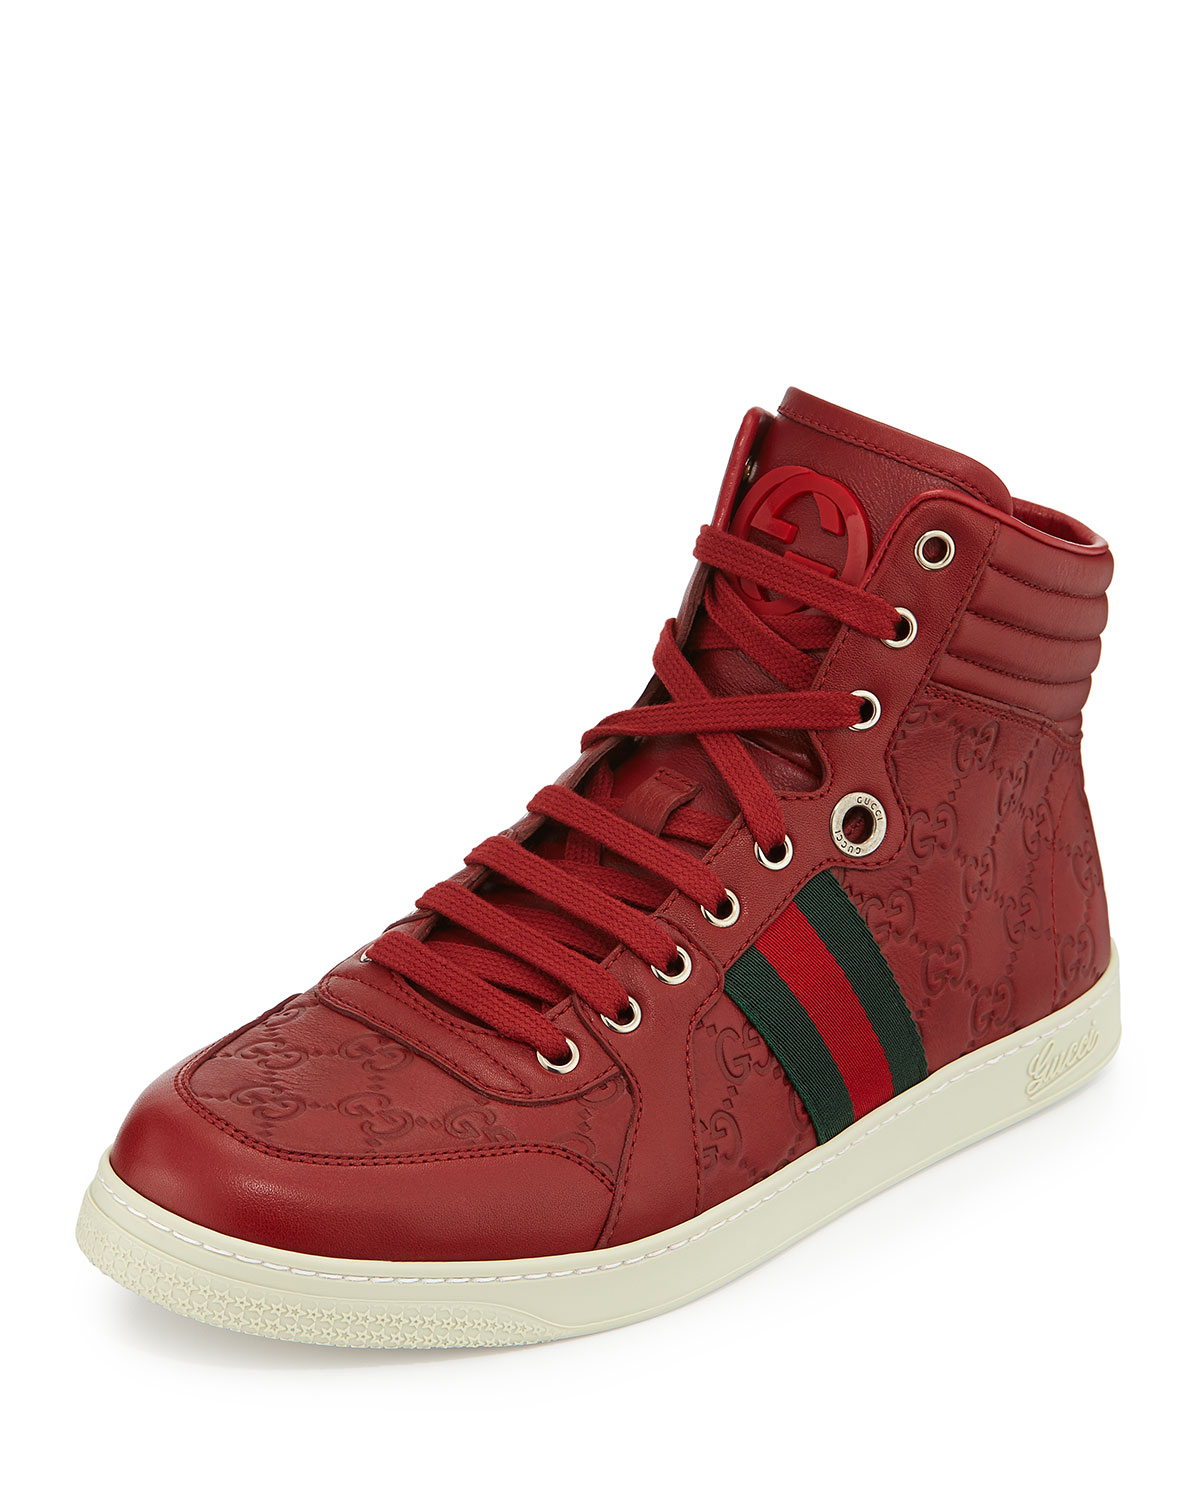 gucci leather high top sneakers in red for men lyst. Black Bedroom Furniture Sets. Home Design Ideas